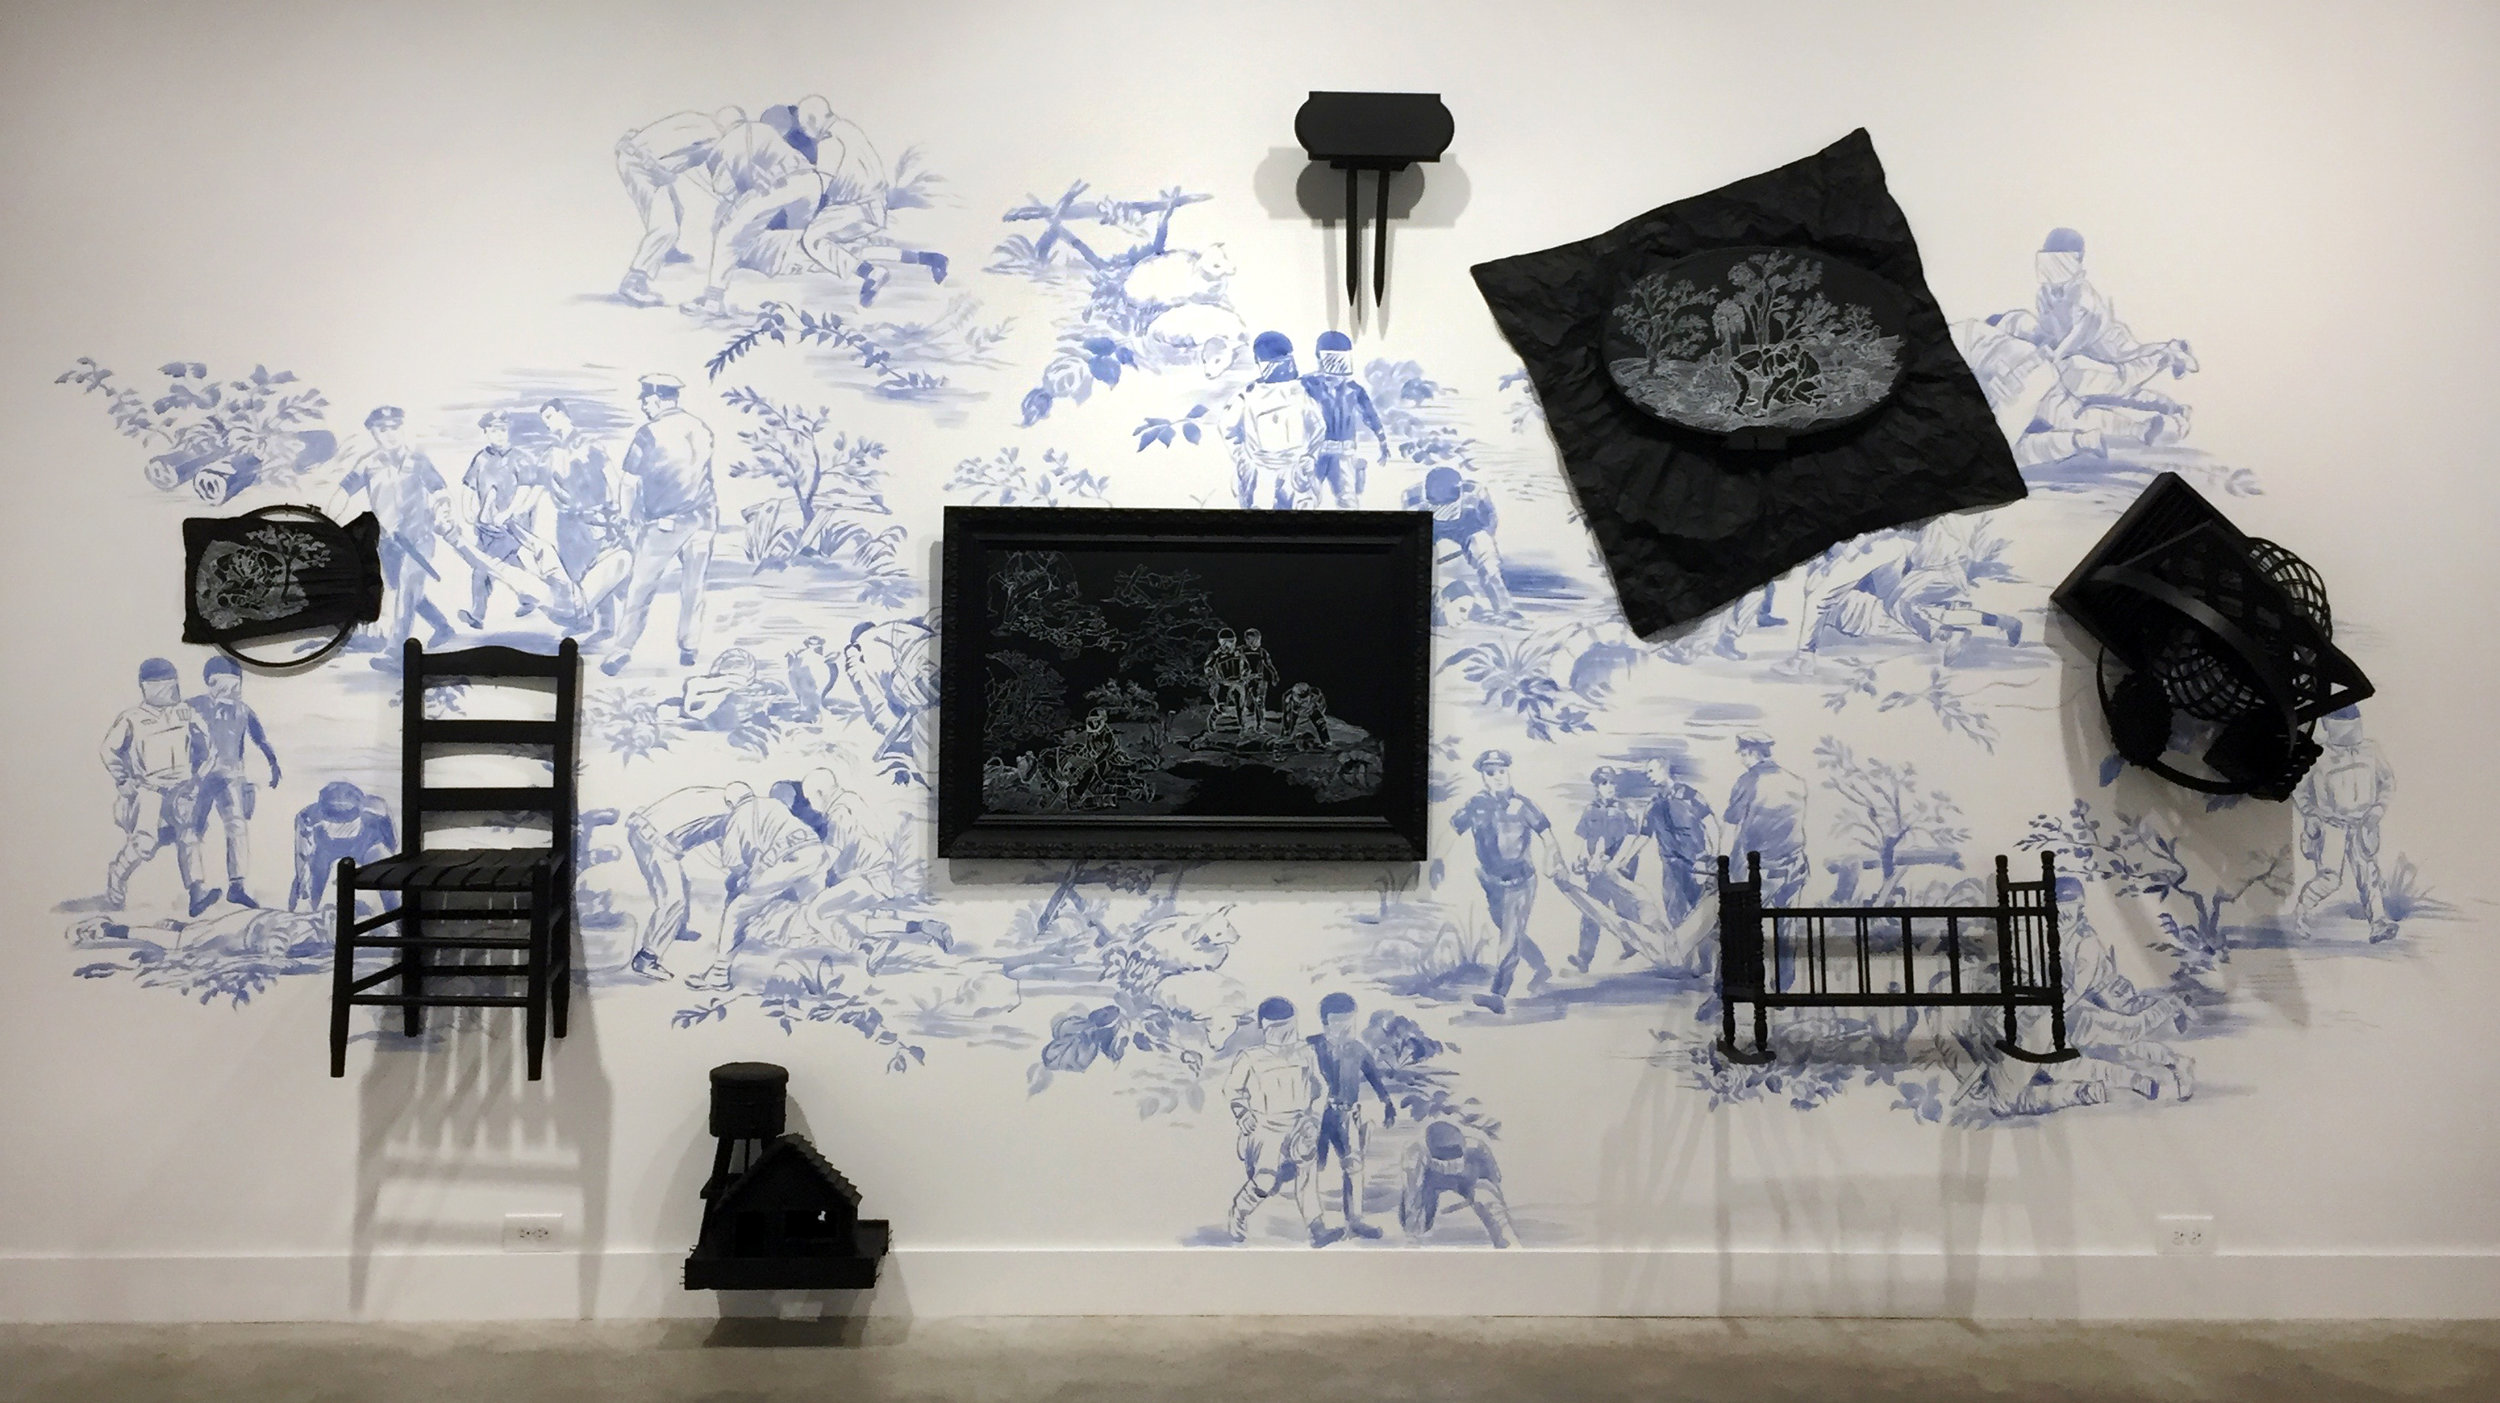 Hollis Hammonds,Domestic Brutality, 2017, acrylic paint on wall, painted objects &chalk marker,96 x 192 x 18 in.